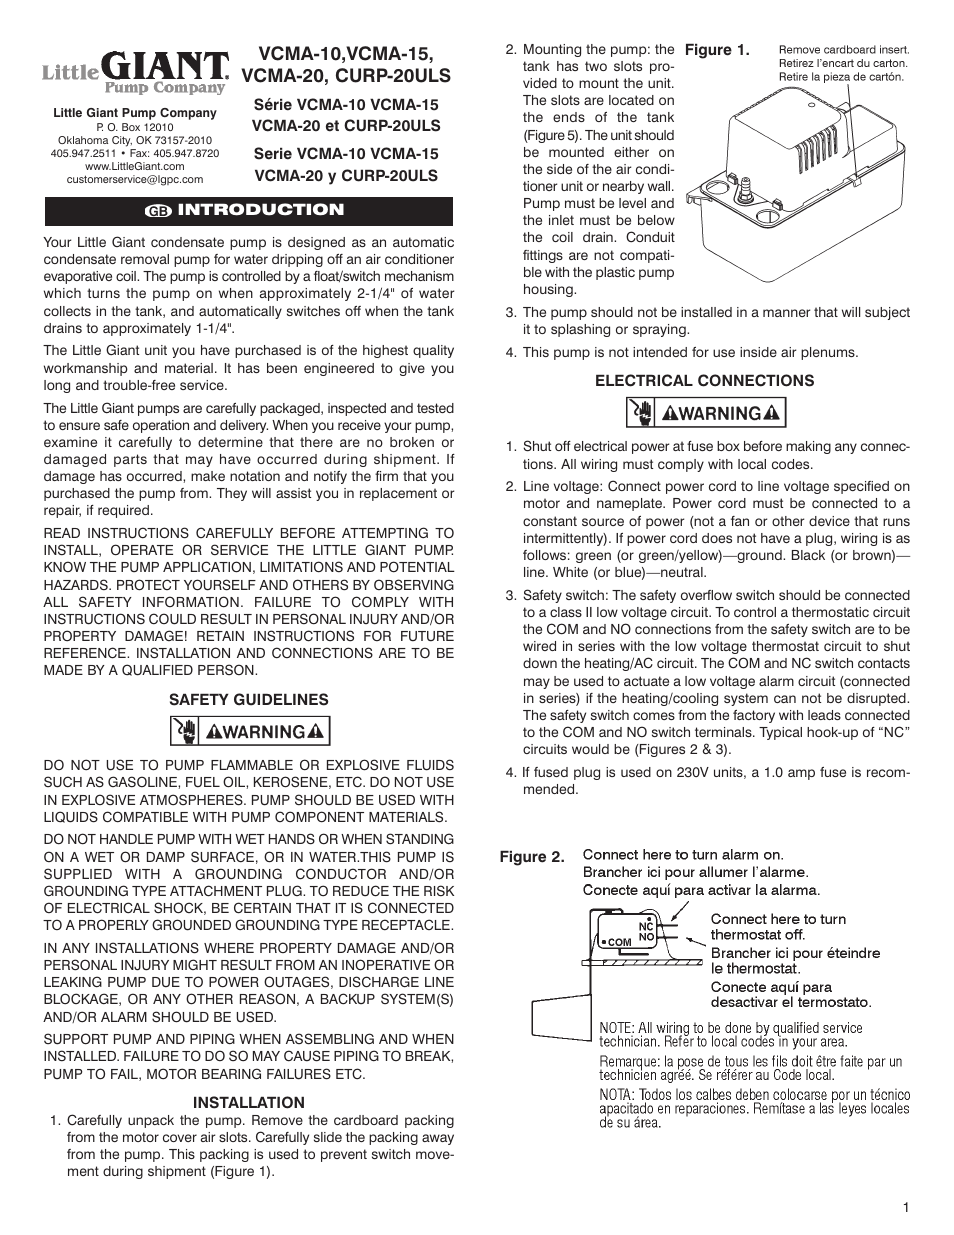 little giant ladder curp 20uls page1 little giant ladder curp 20uls user manual 8 pages also for little giant pump wiring diagram at creativeand.co